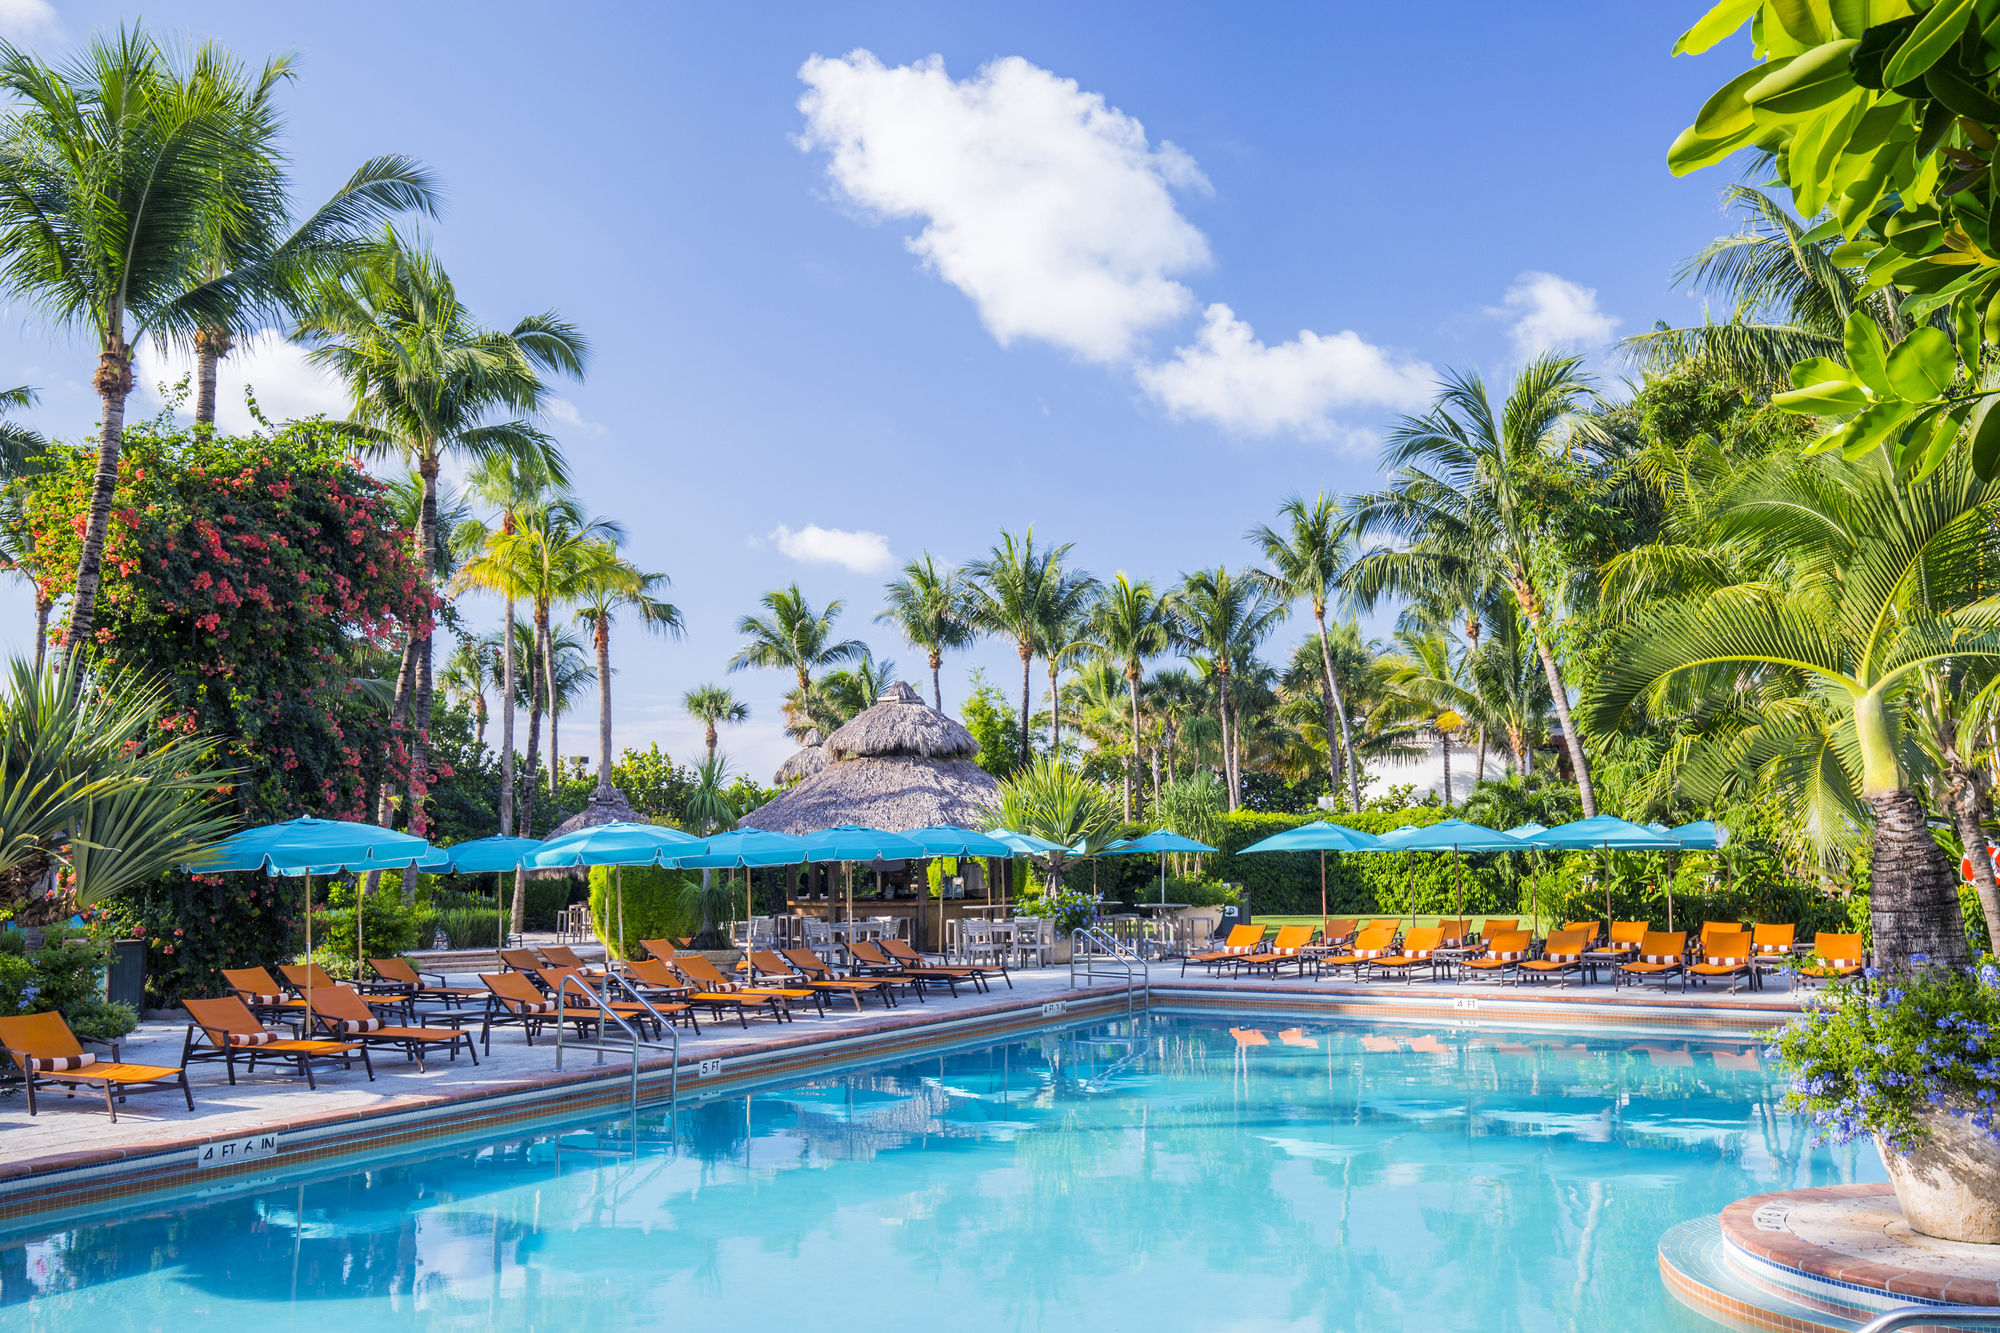 Discount Coupon for The Palms Hotel & Spa in Miami Beach